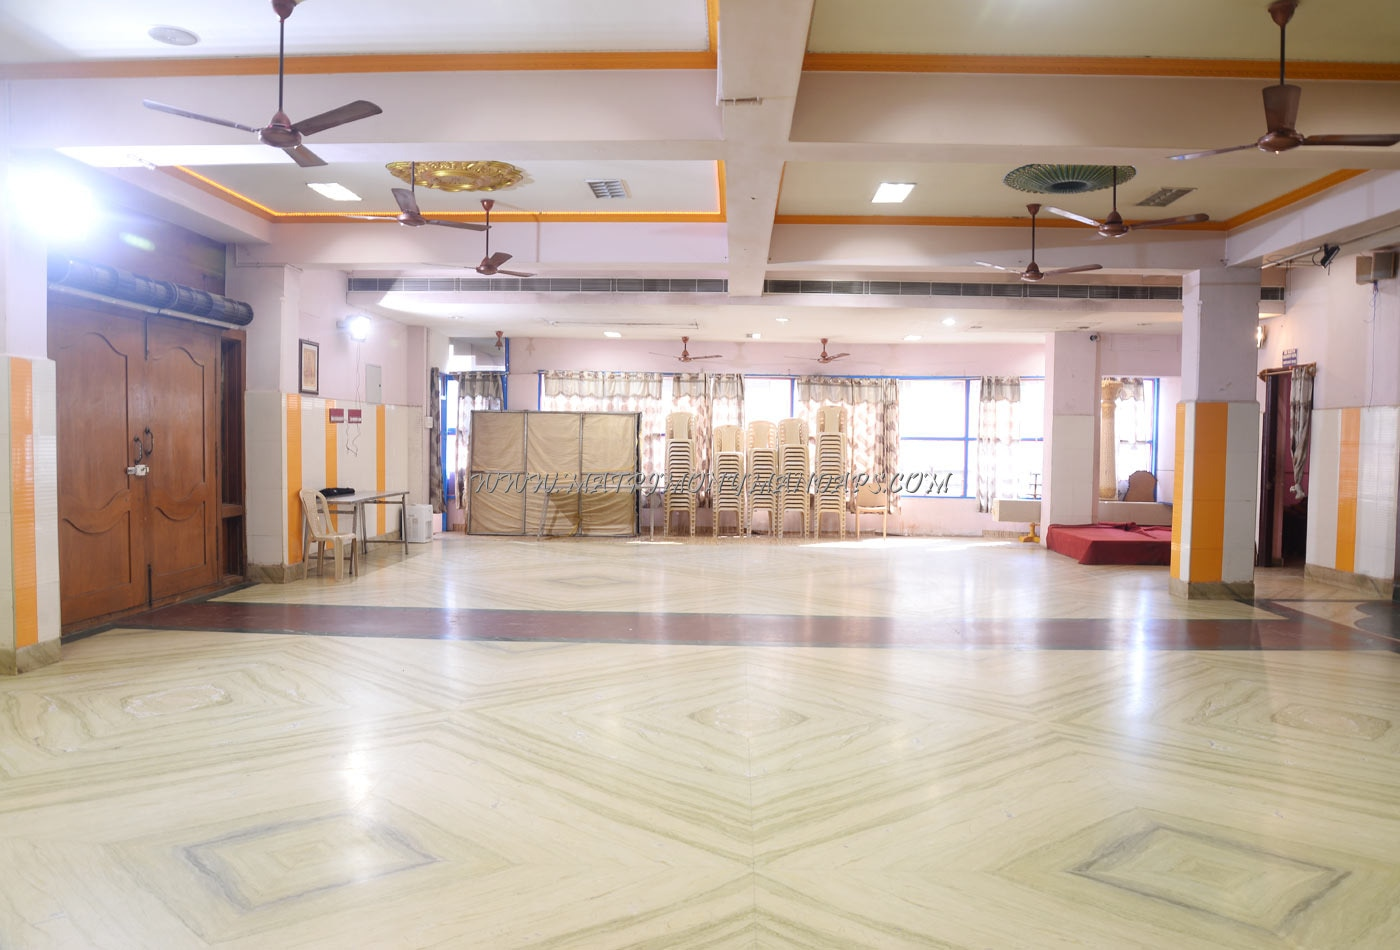 Find the availability of the Sri Ram Ganesh Mahal (A/C) in Chrompet, Chennai and avail special offers